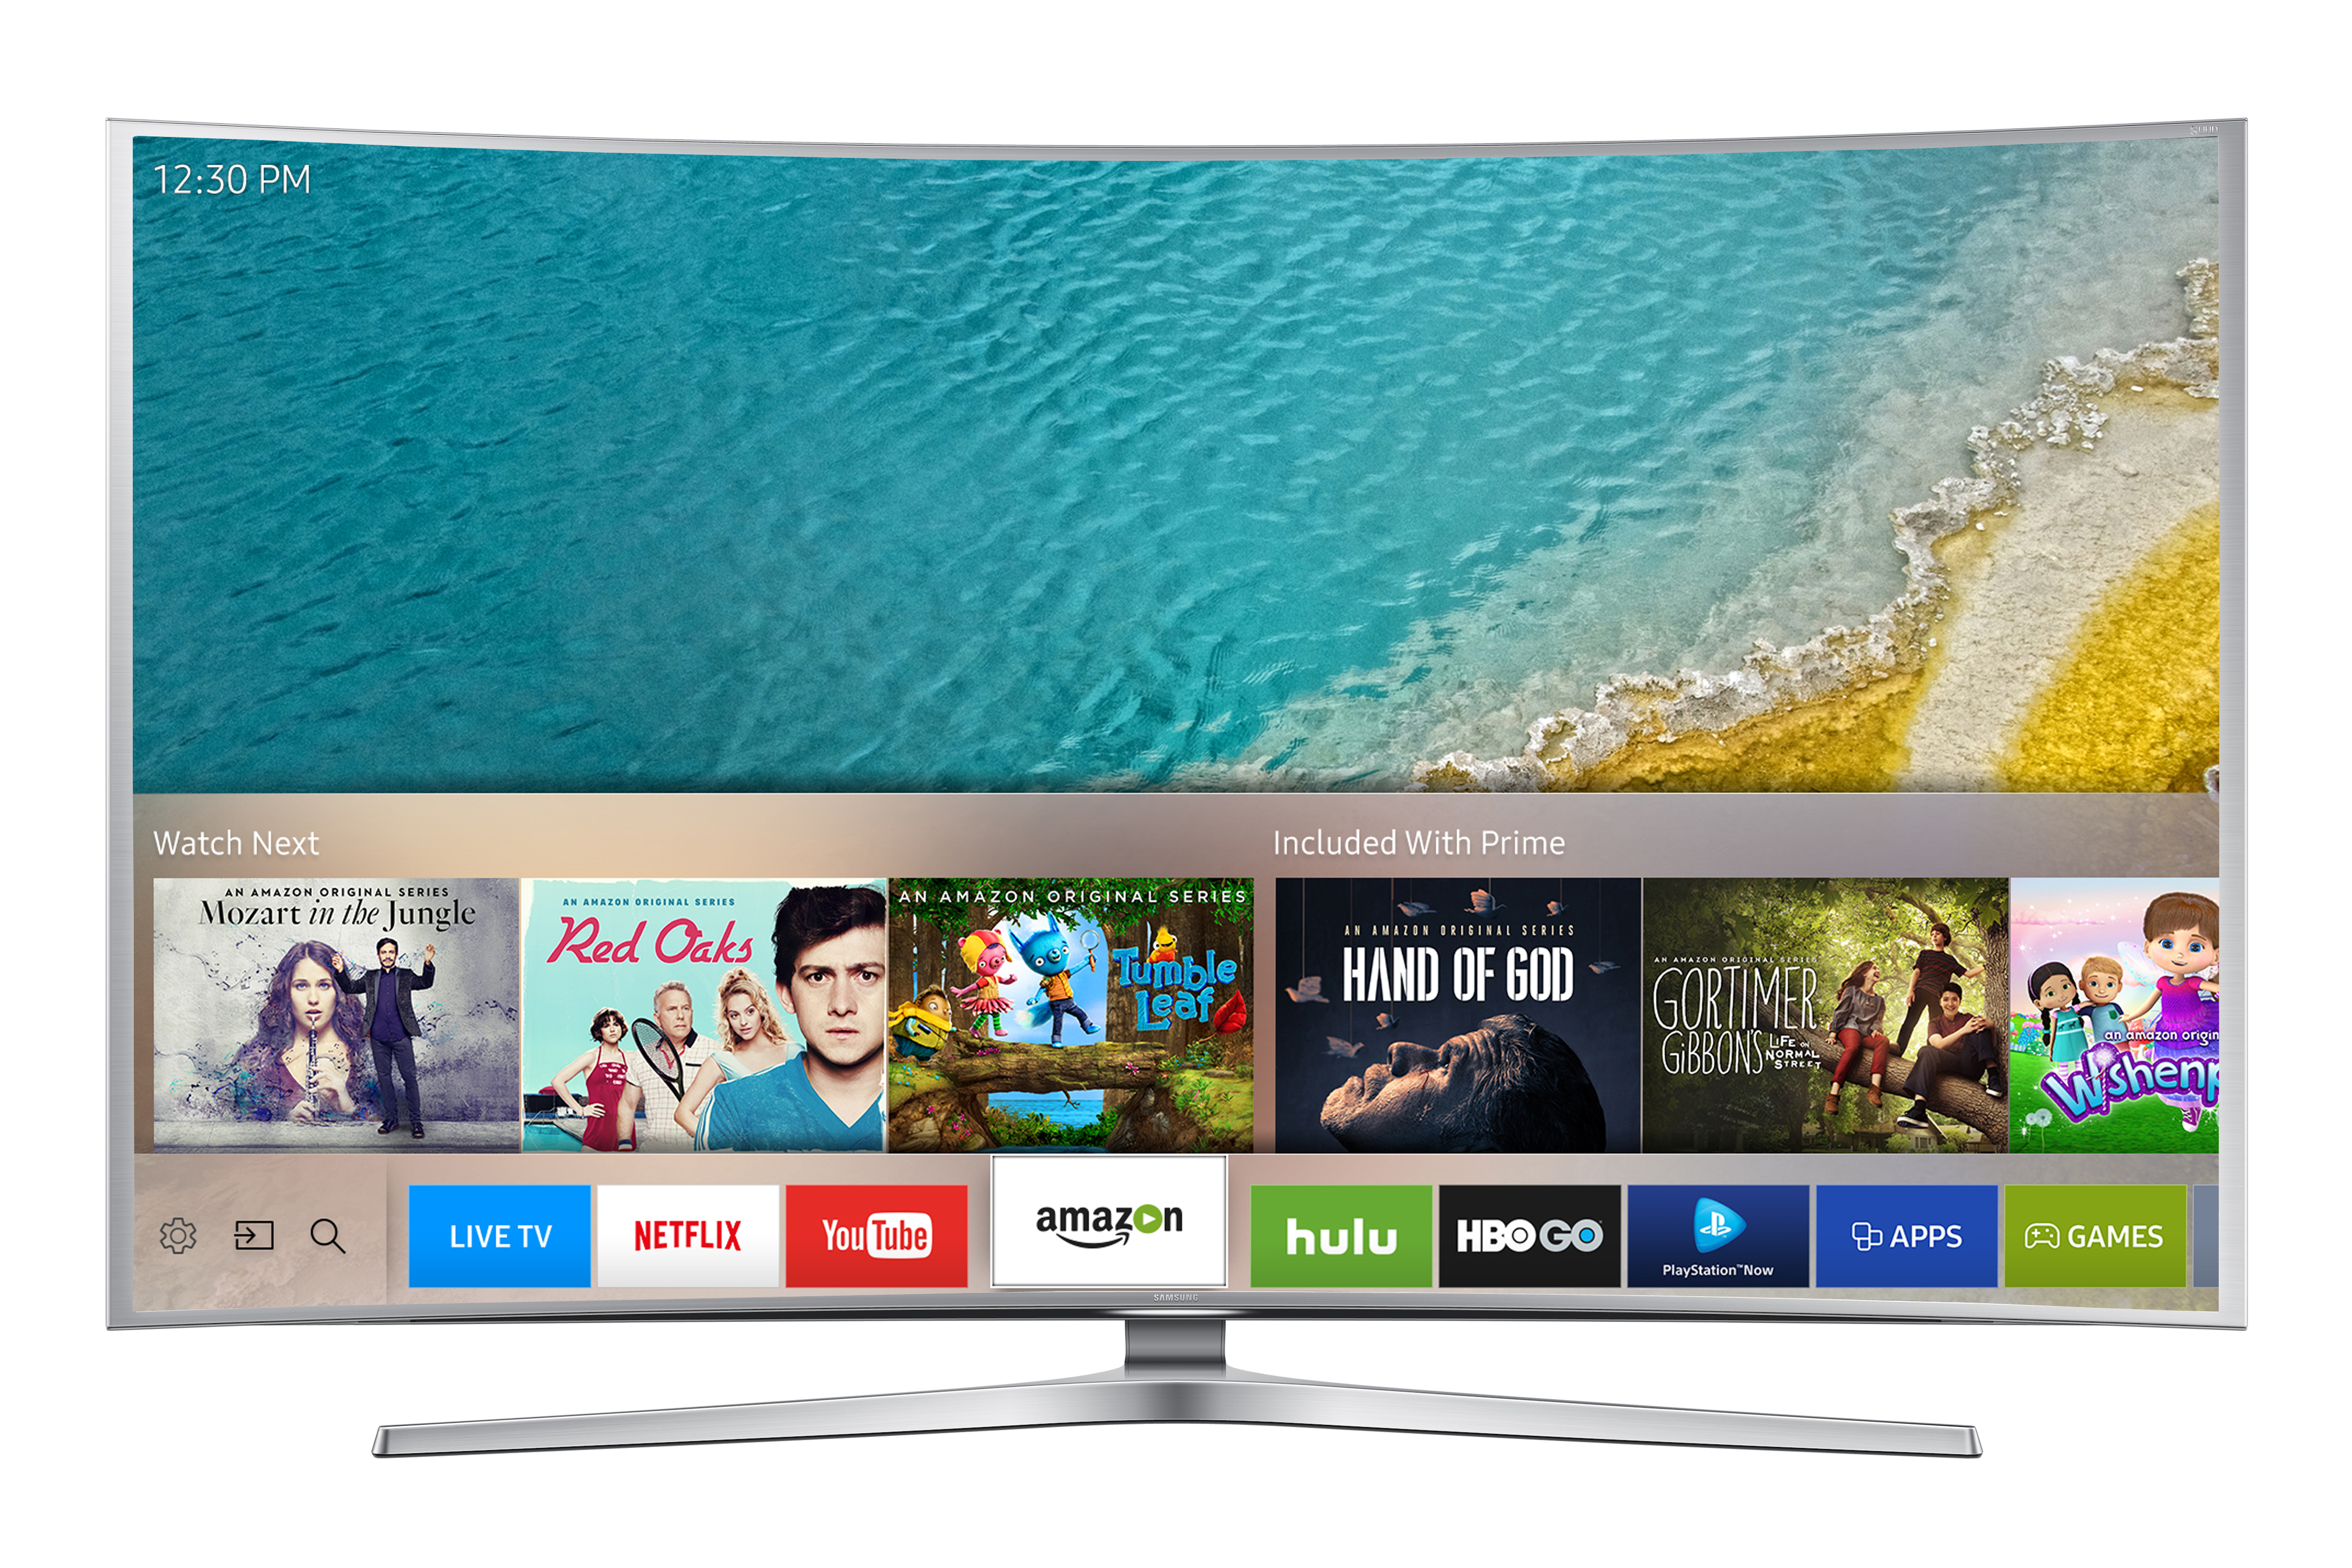 Smart Tv Wiring Hide Wires A Shelf Sky Telephone Invacare 24v Linear Actuator Diagram Samsung Electronics Introduces New User Experience